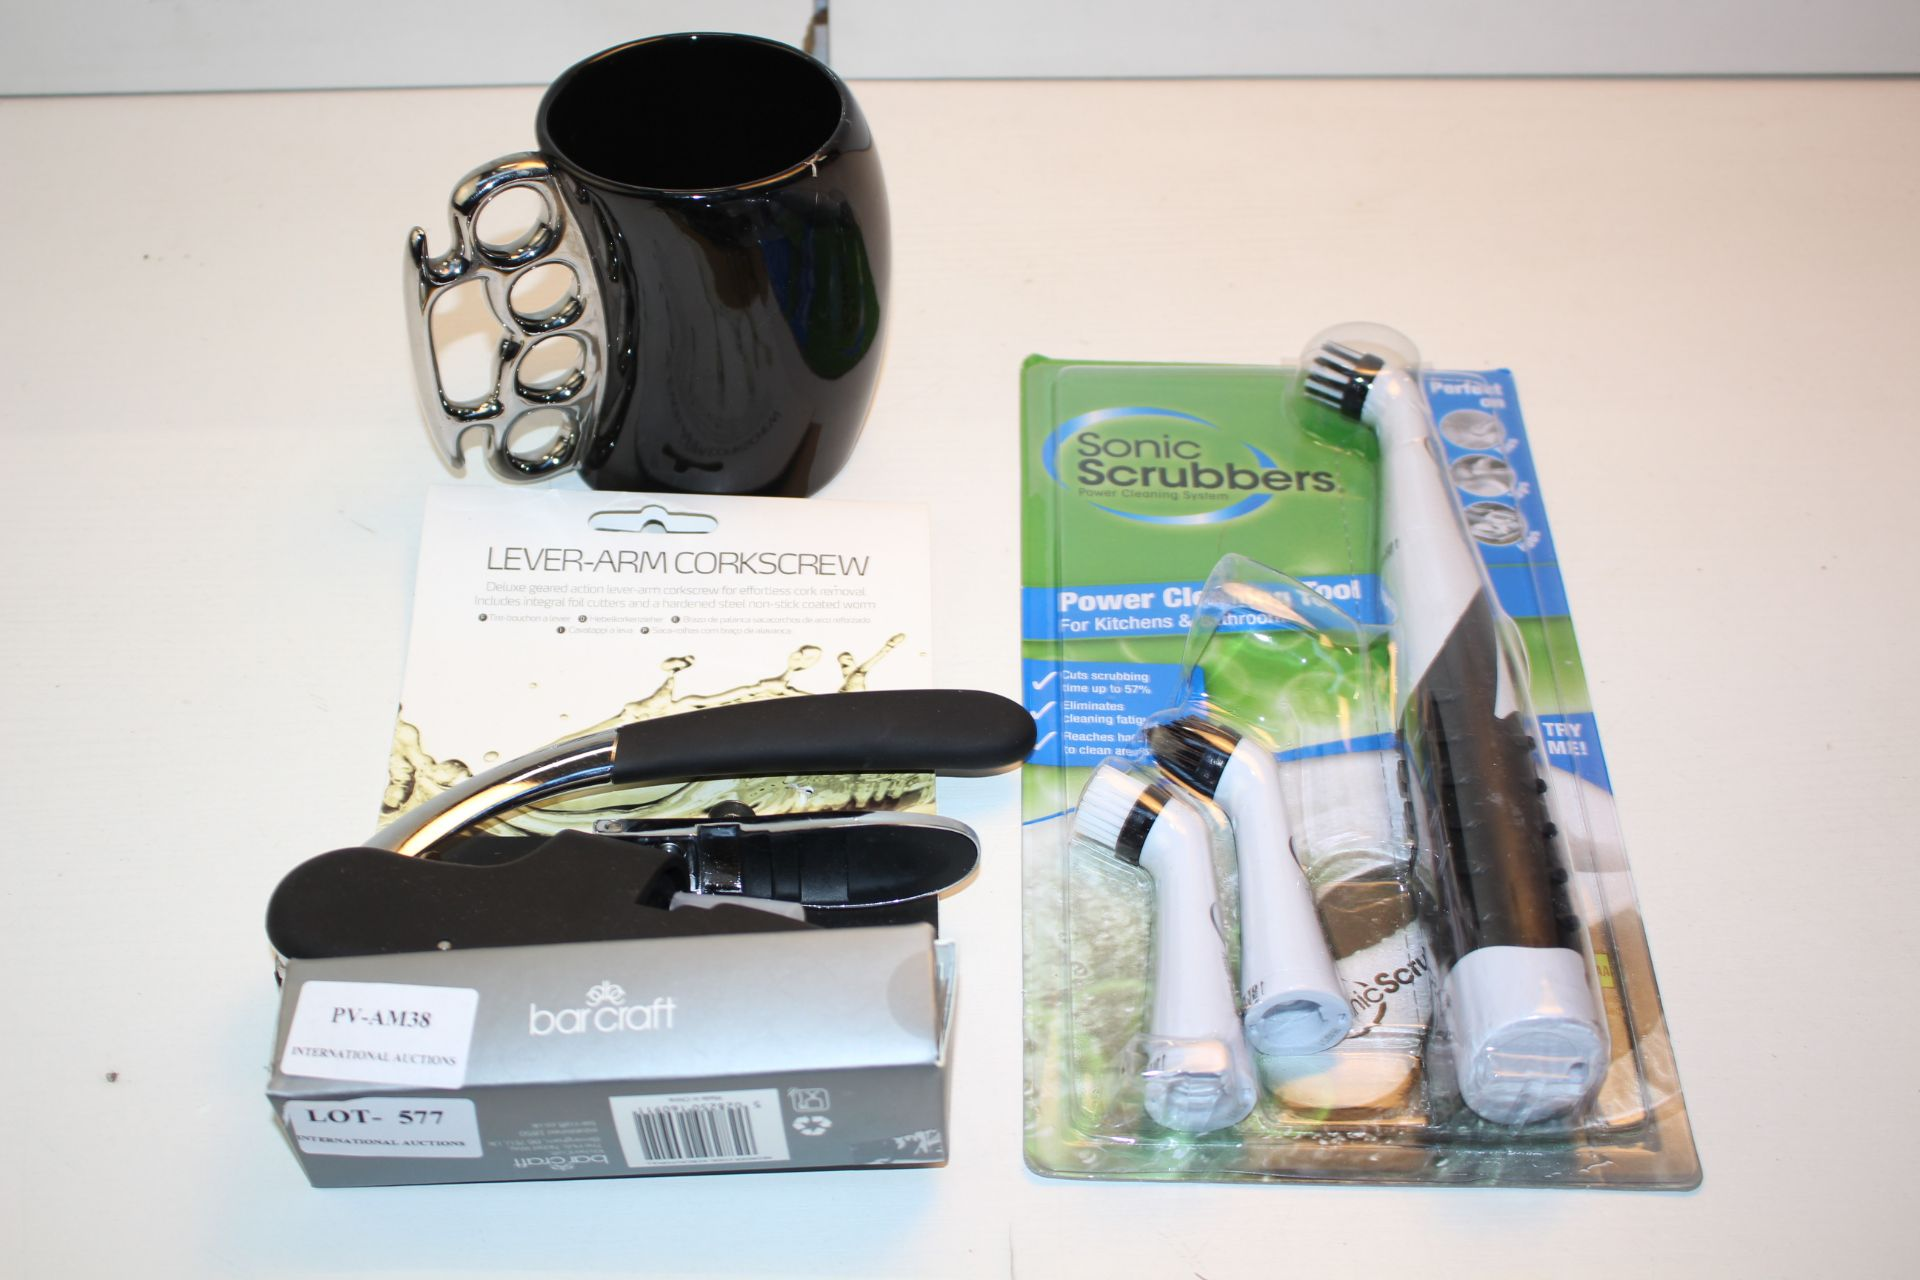 X3 KITHEN ITEMS INCLUDING CUP, LEVER ARM CORKSCREW AND SONIC SCRUBCondition ReportAppraisal